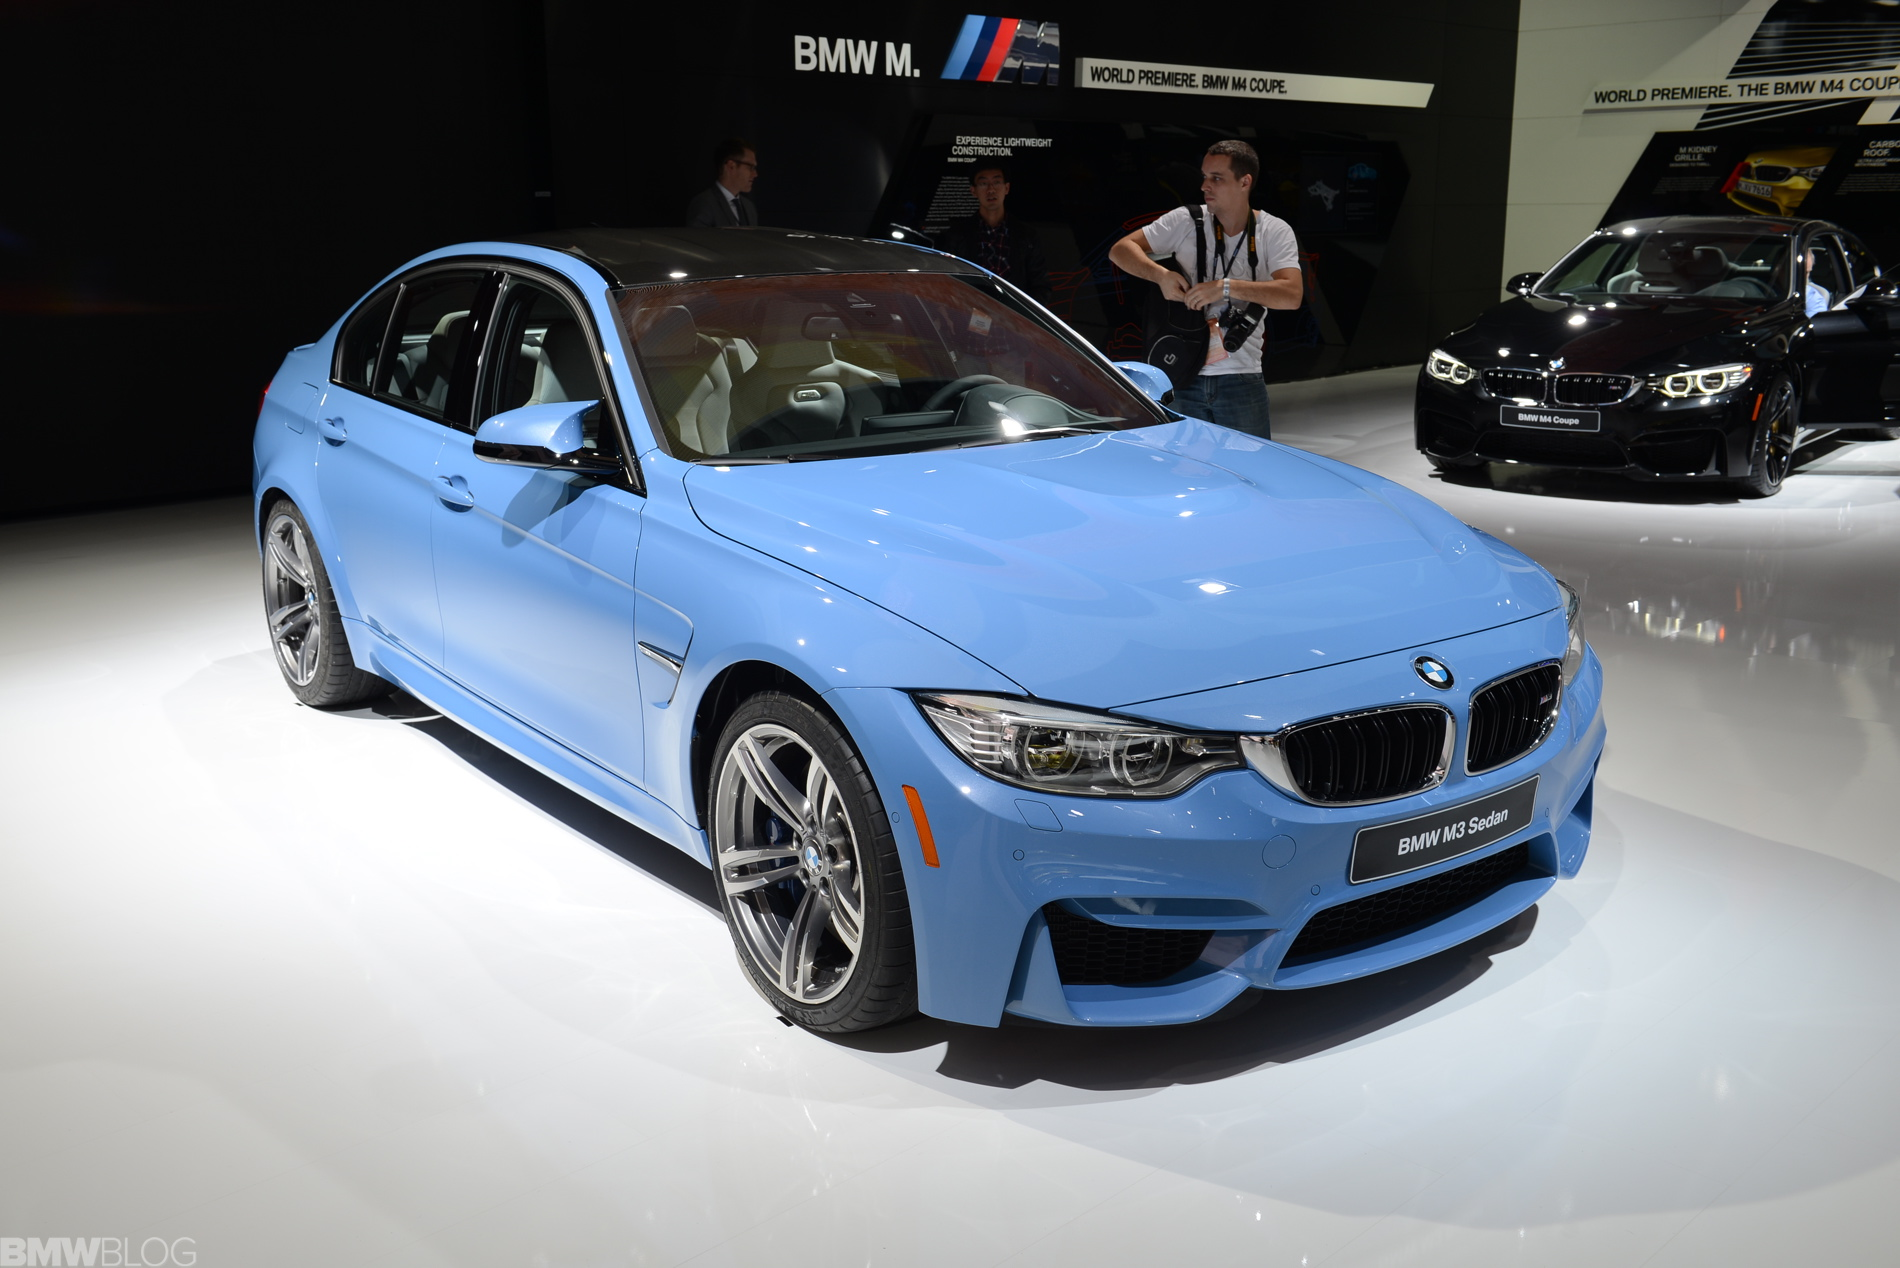 2014 Naias Bmw M3 In Yas Marina Blue